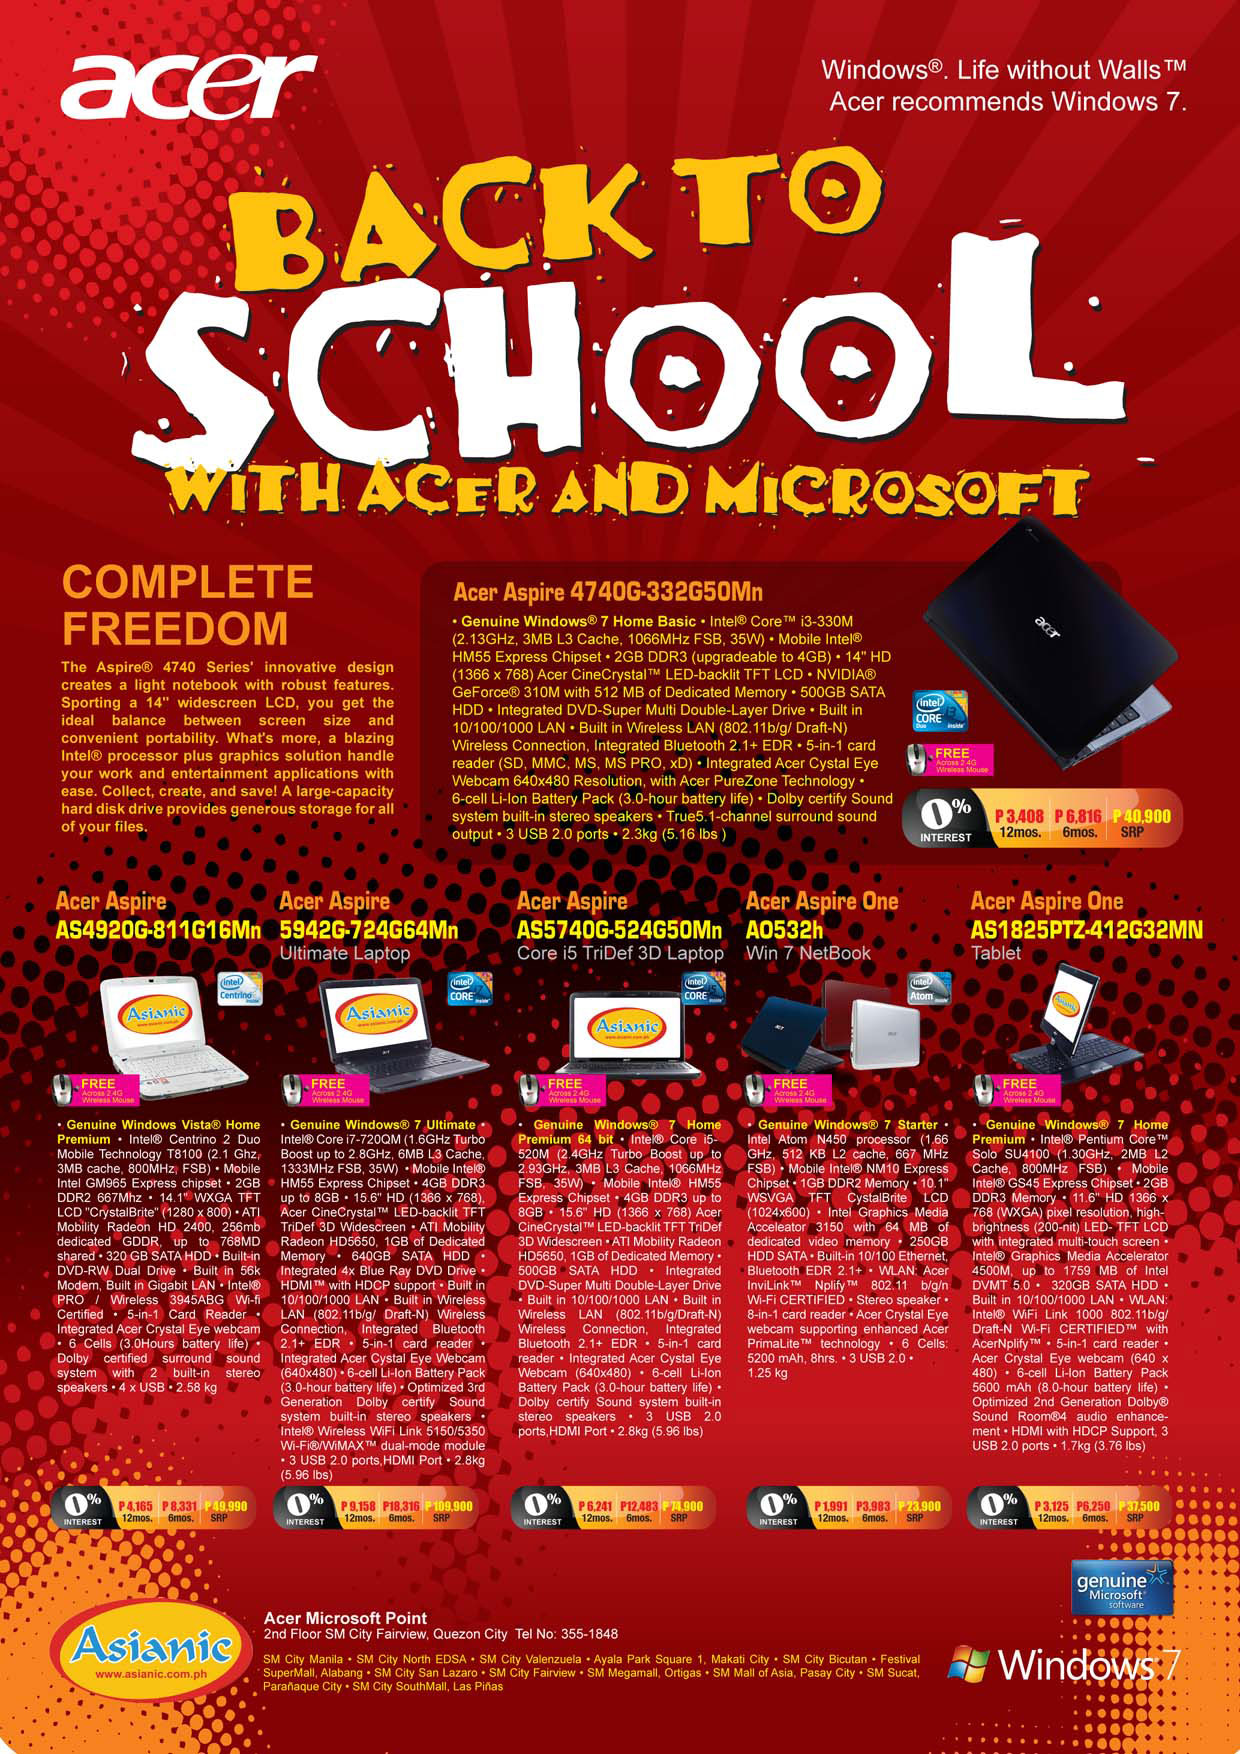 Acer Back To School Promo 2010 Asianic Distributors Inc